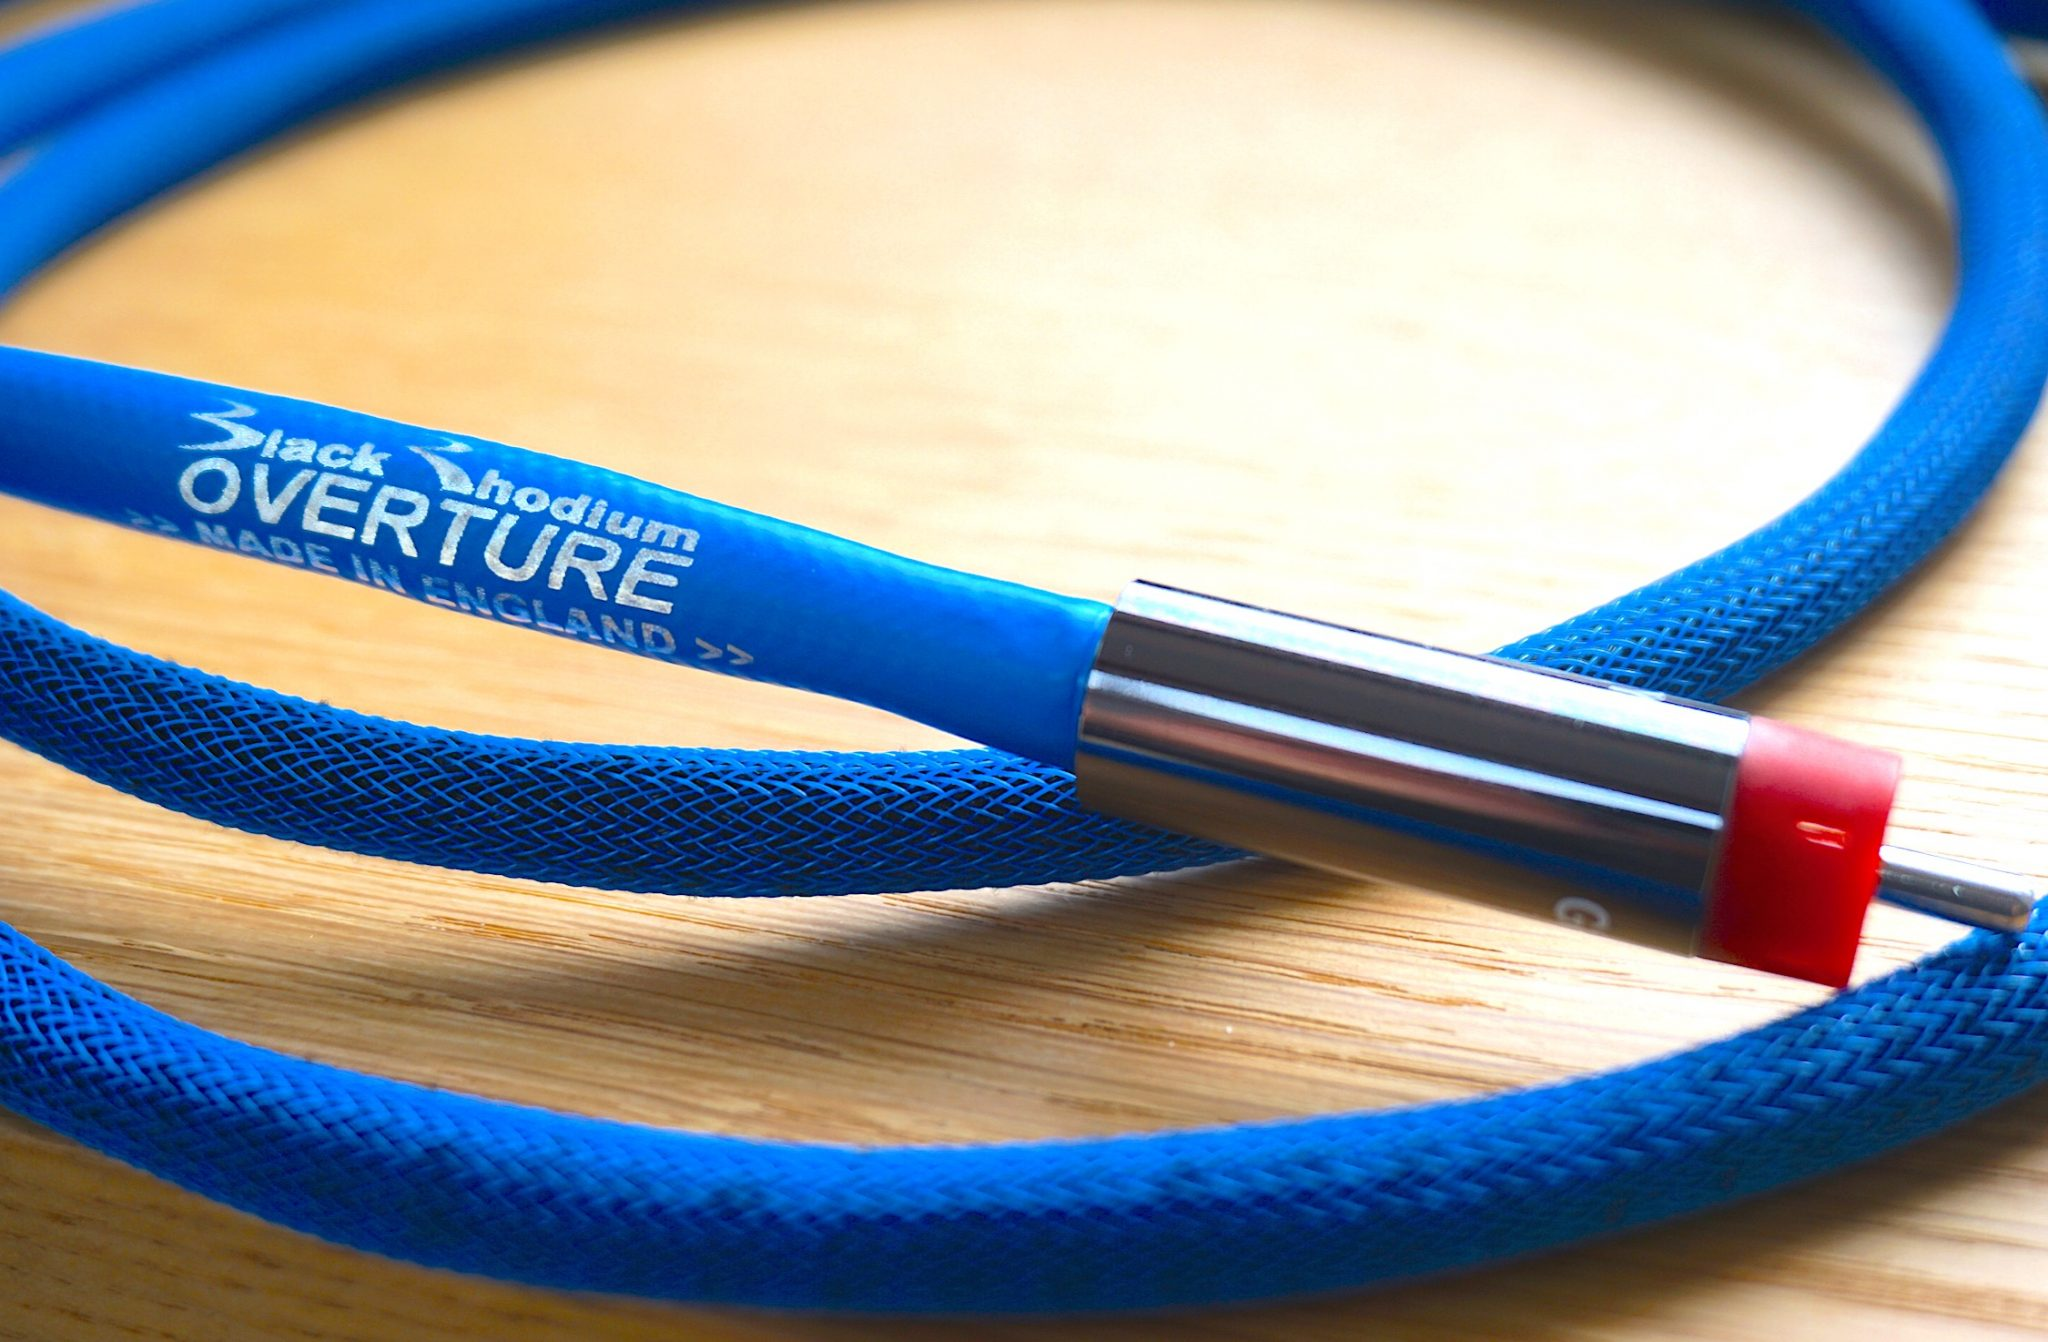 Overture Interconnect Cables from Black Rhodium